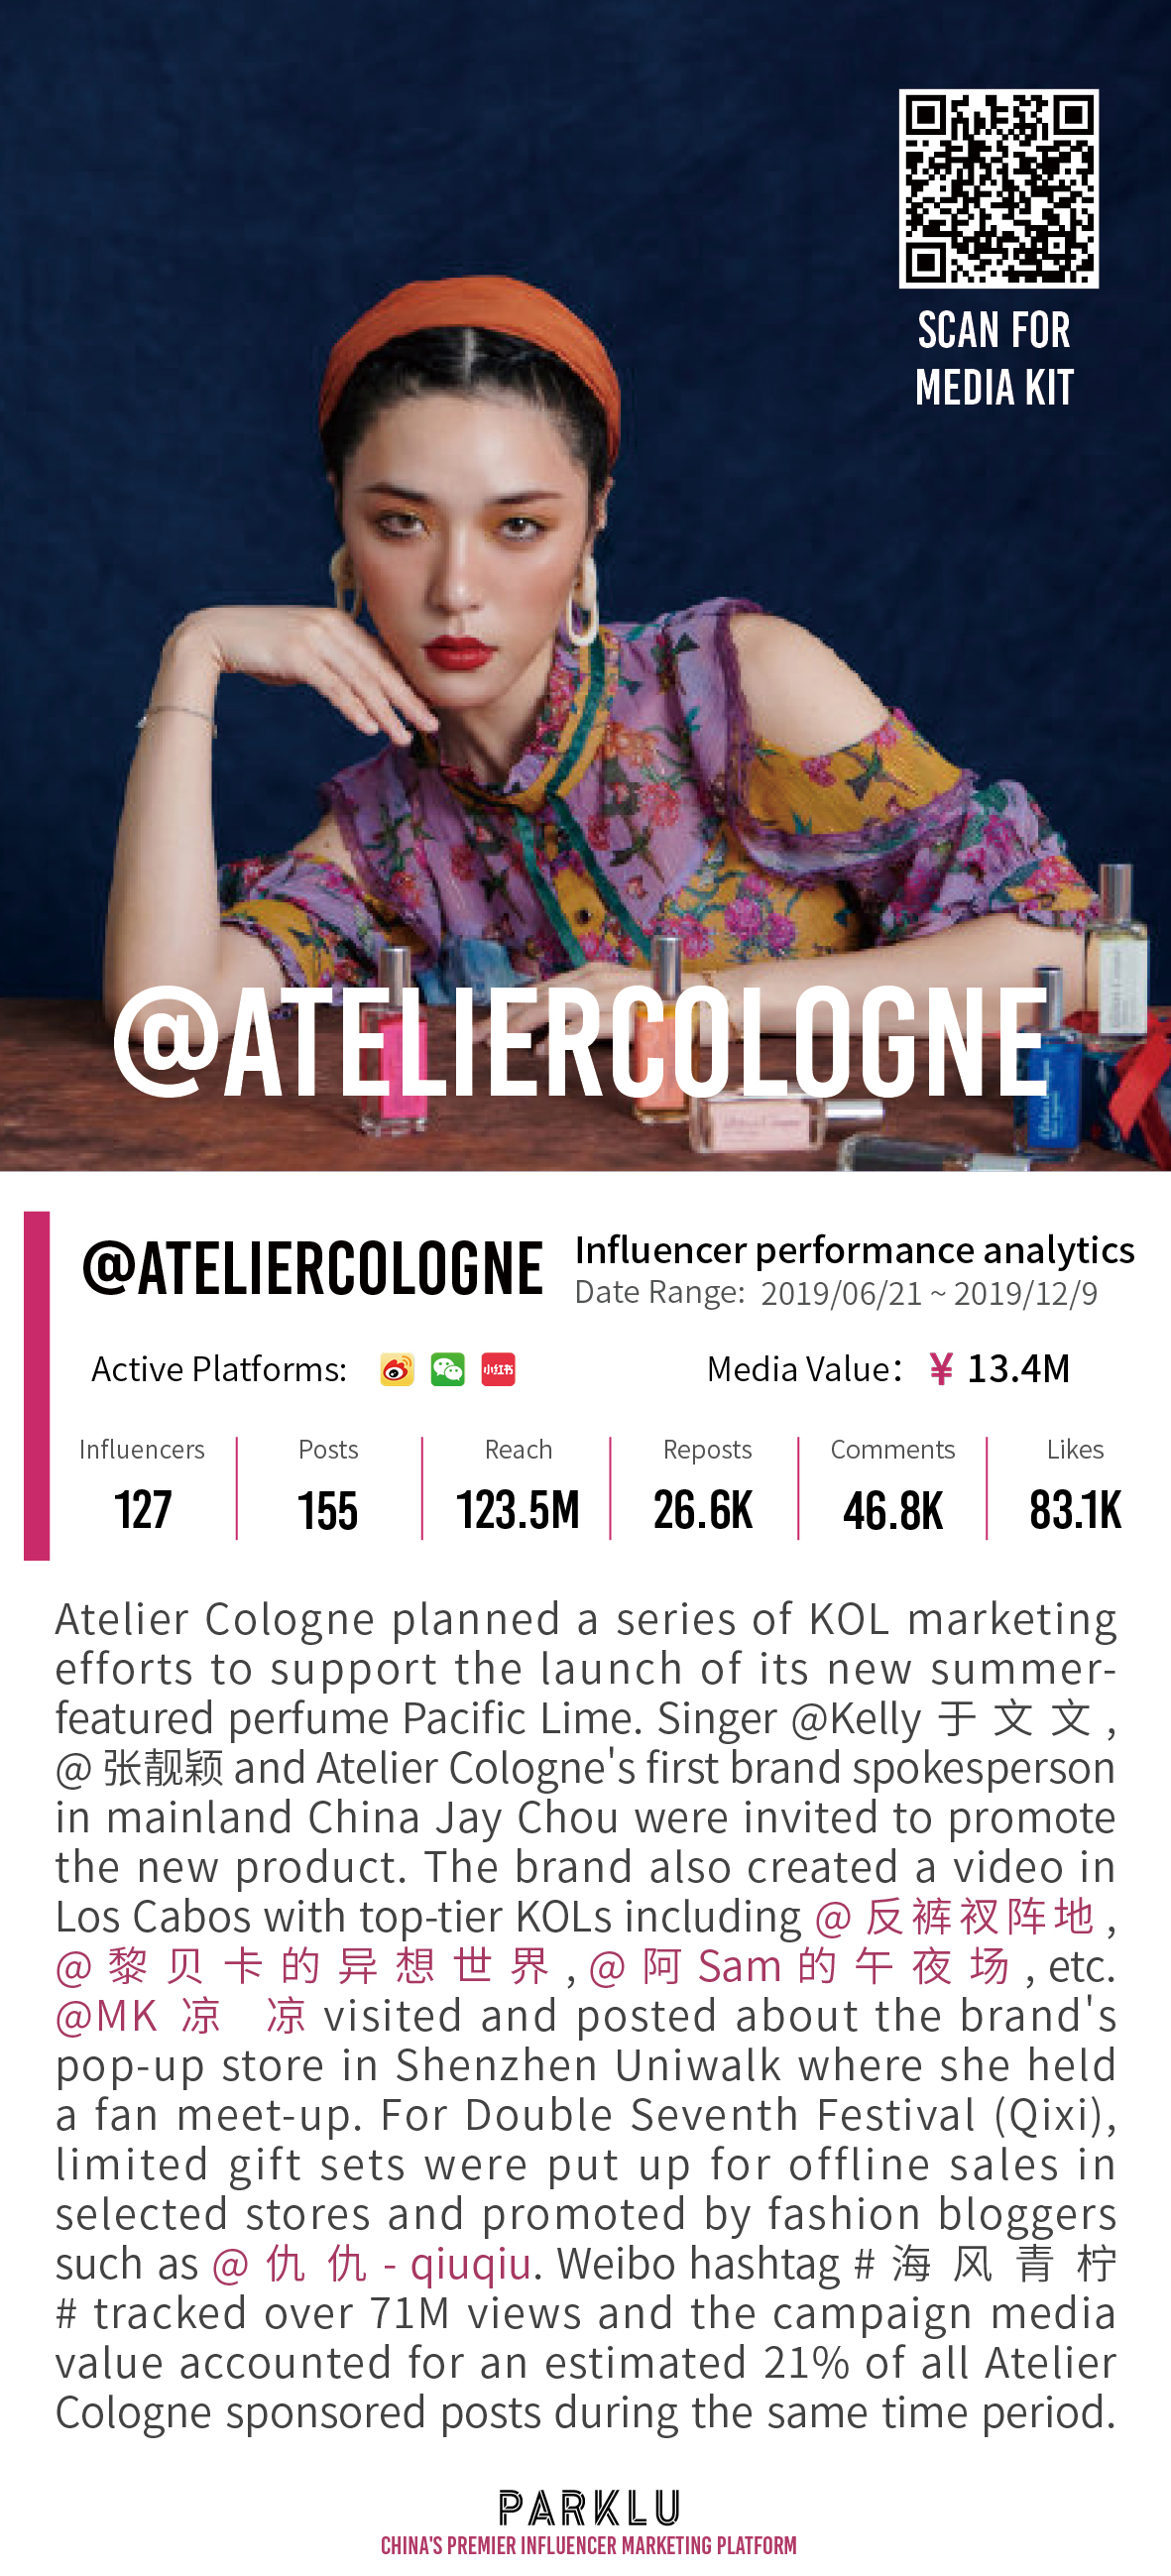 Atelier Cologne New Perfume